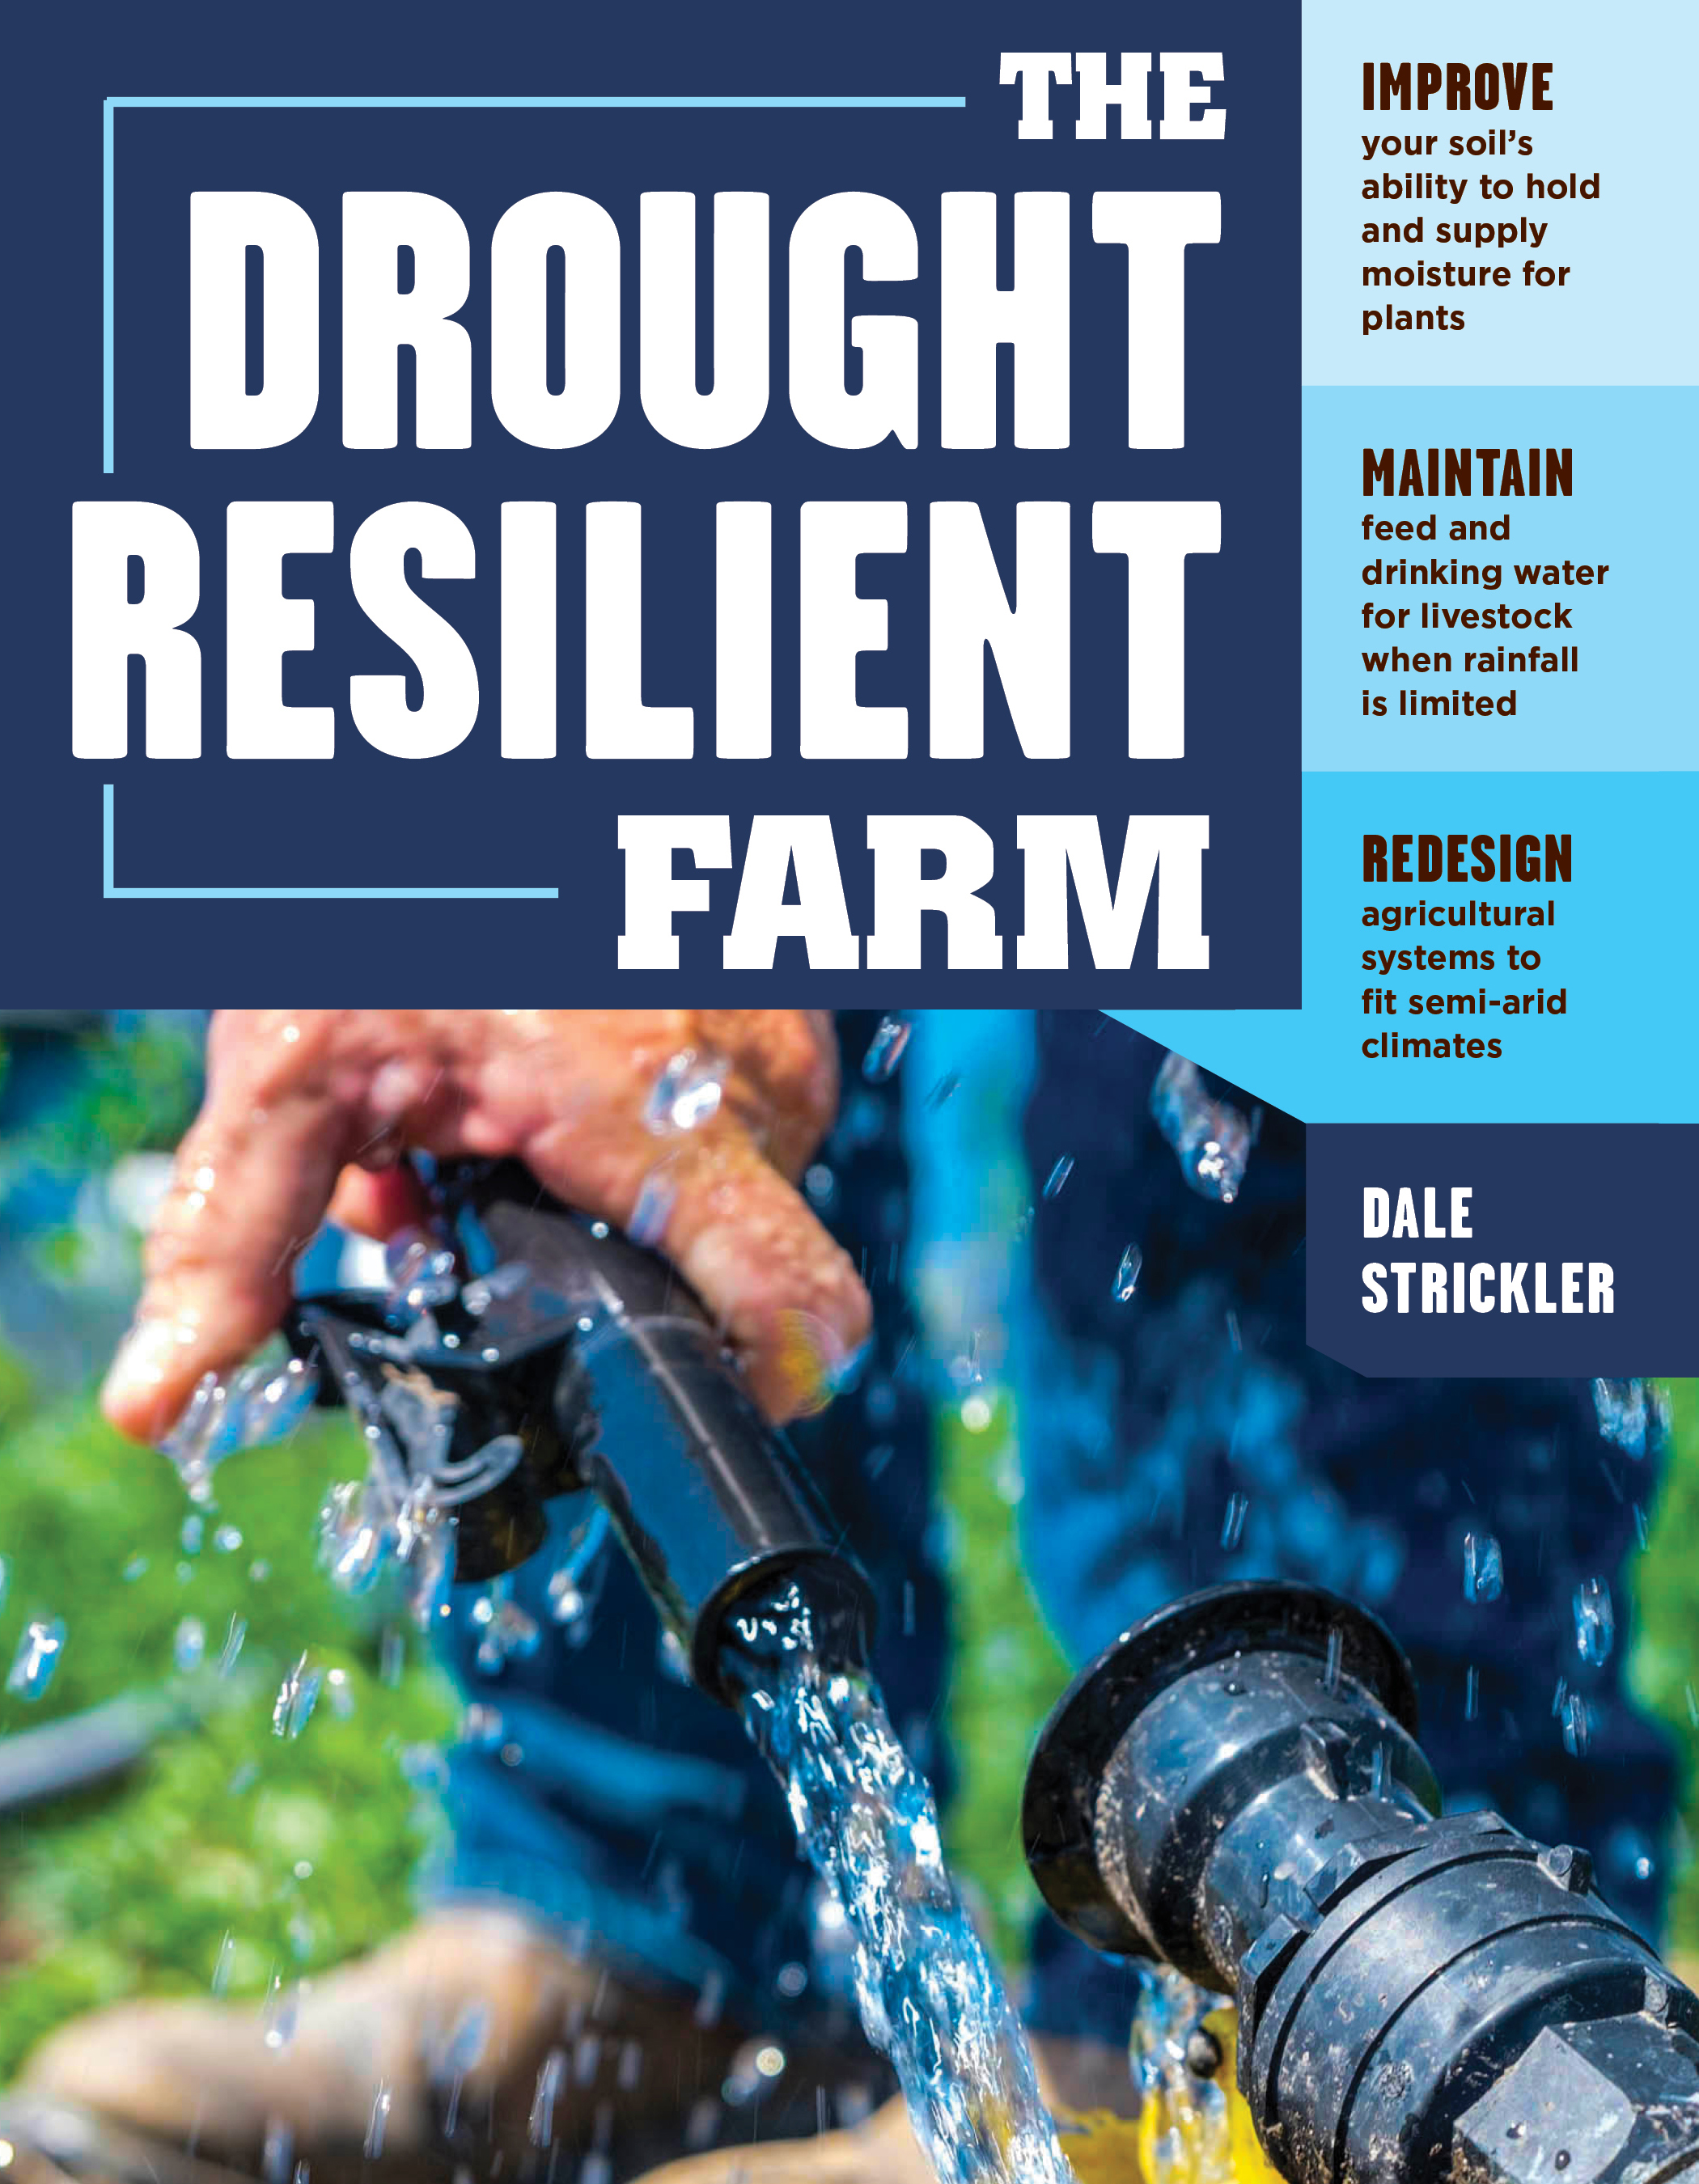 The Drought-Resilient Farm Improve Your Soil's Ability to Hold and Supply Moisture for Plants; Maintain Feed and Drinking Water for Livestock when Rainfall Is Limited; Redesign Agricultural Systems to Fit Semi-arid Climates - Dale Strickler